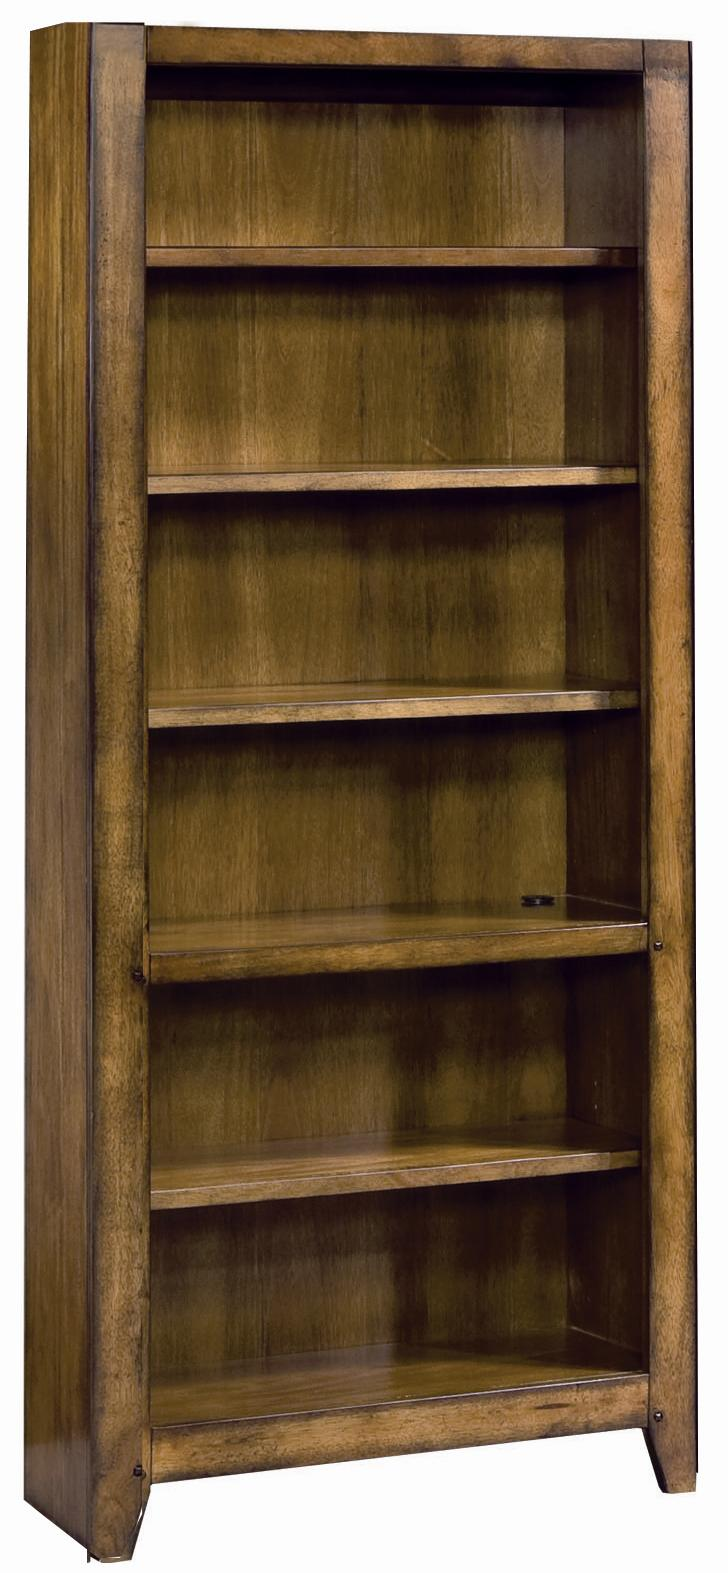 Aspenhome Cross Country Bookcase - Item Number: IMR-333